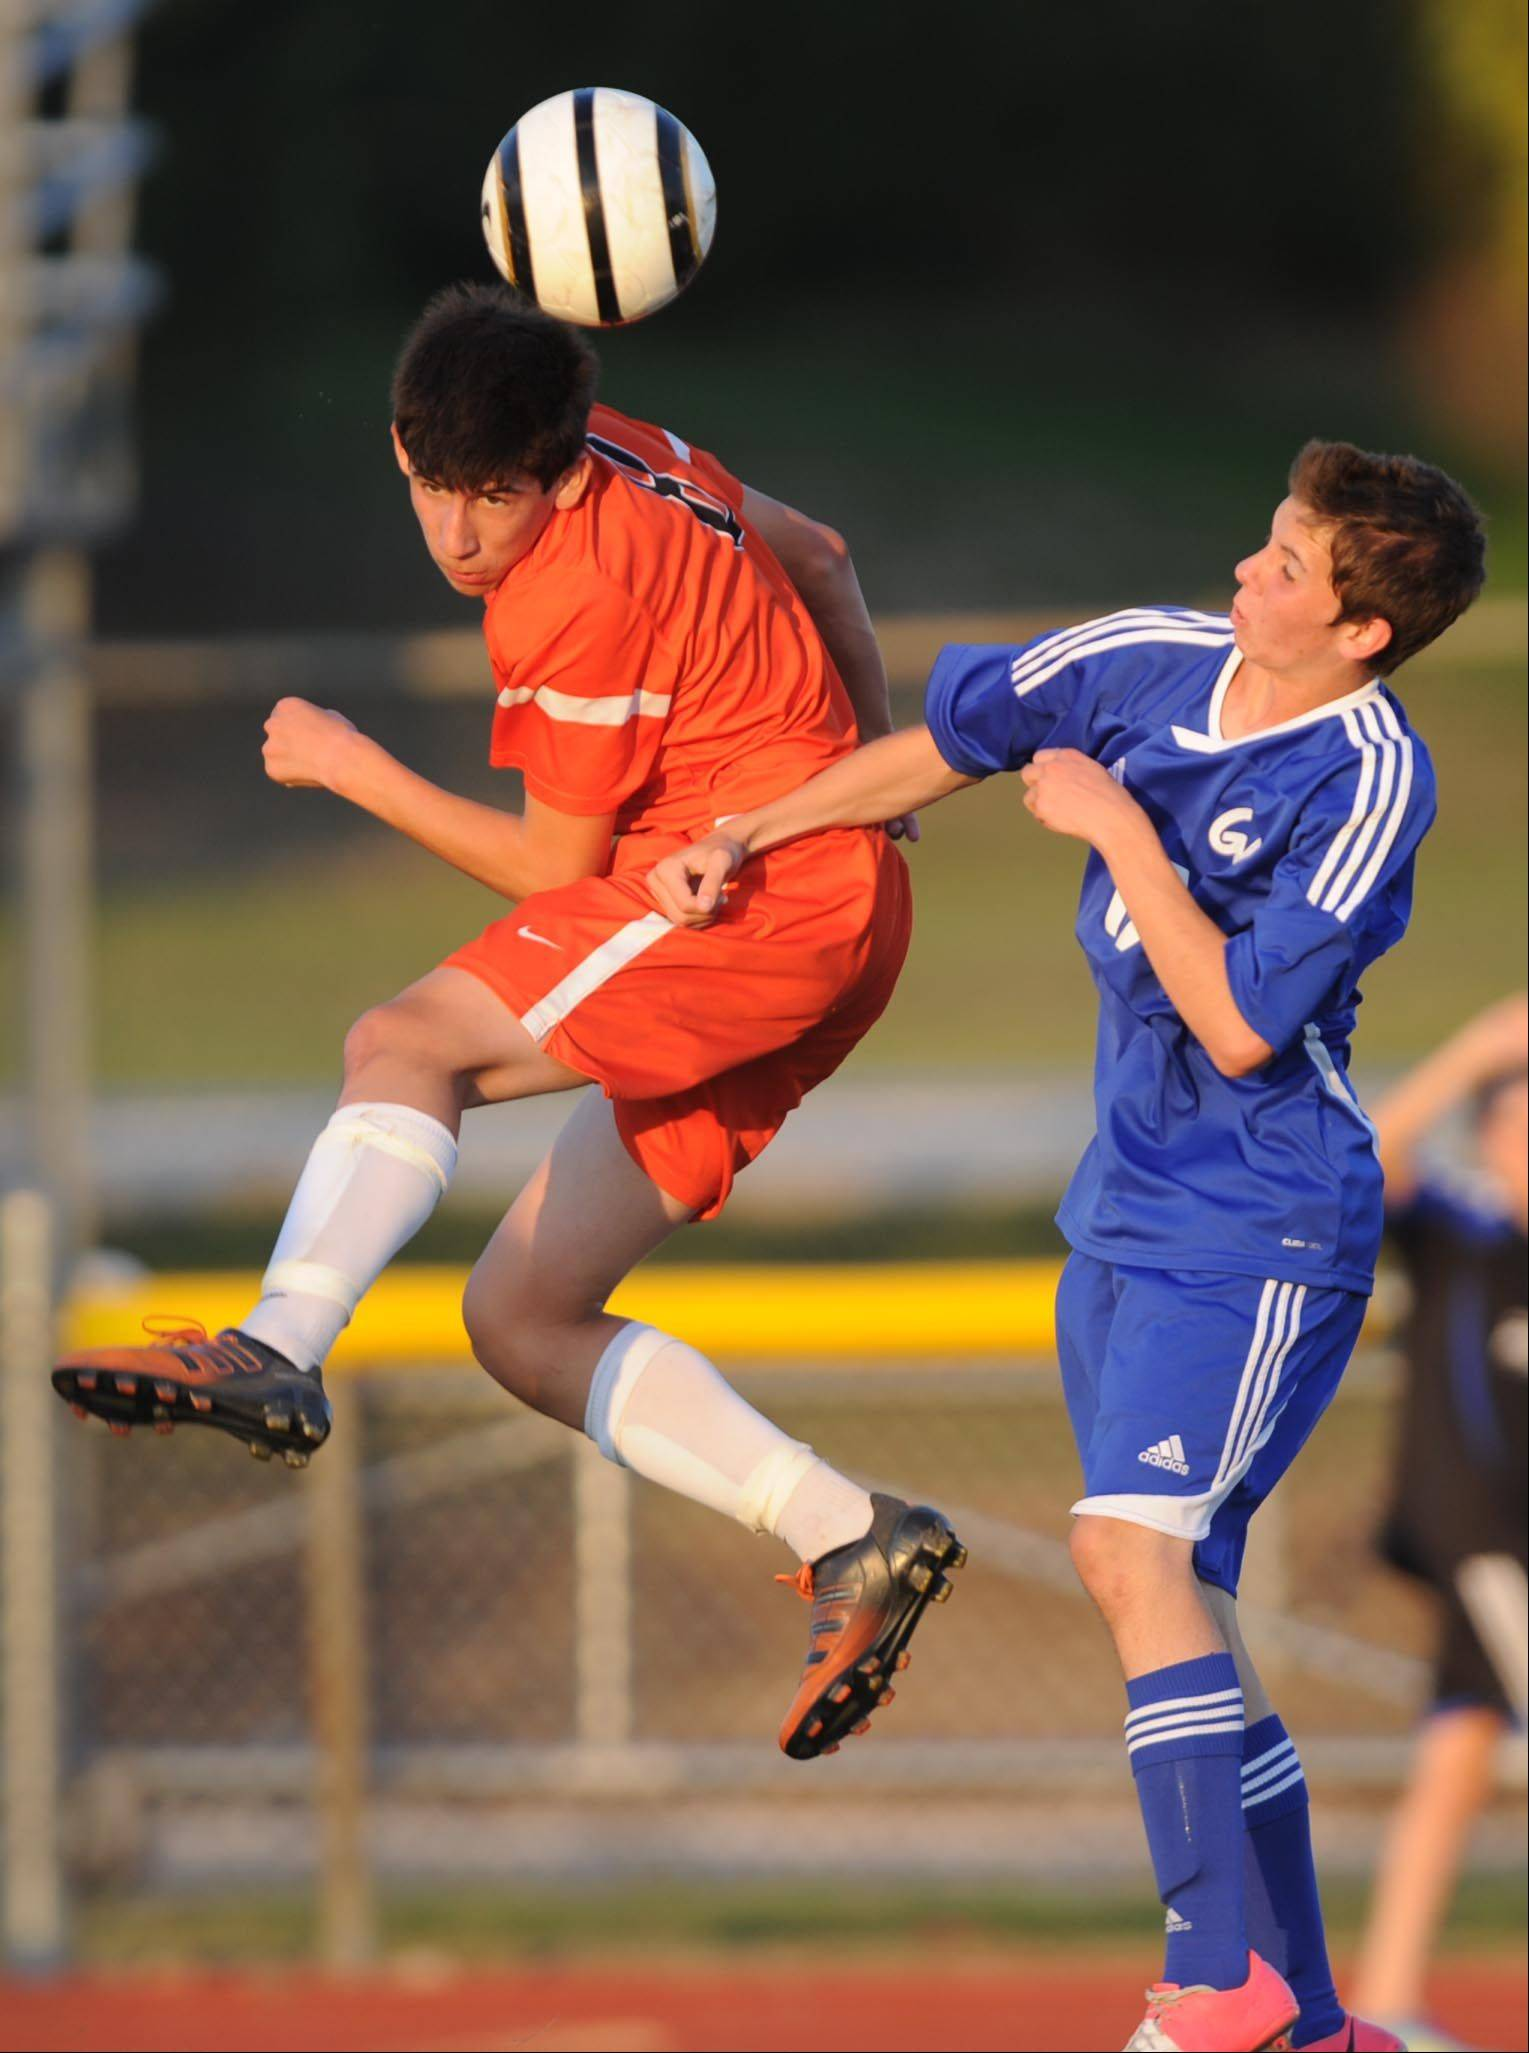 St. Charles East's Taylor Ortiz passes a header as Geneva's Conor Bachte defends Tuesday during the Tri Cities Boys Soccer Challenge at St. Charles East High School.